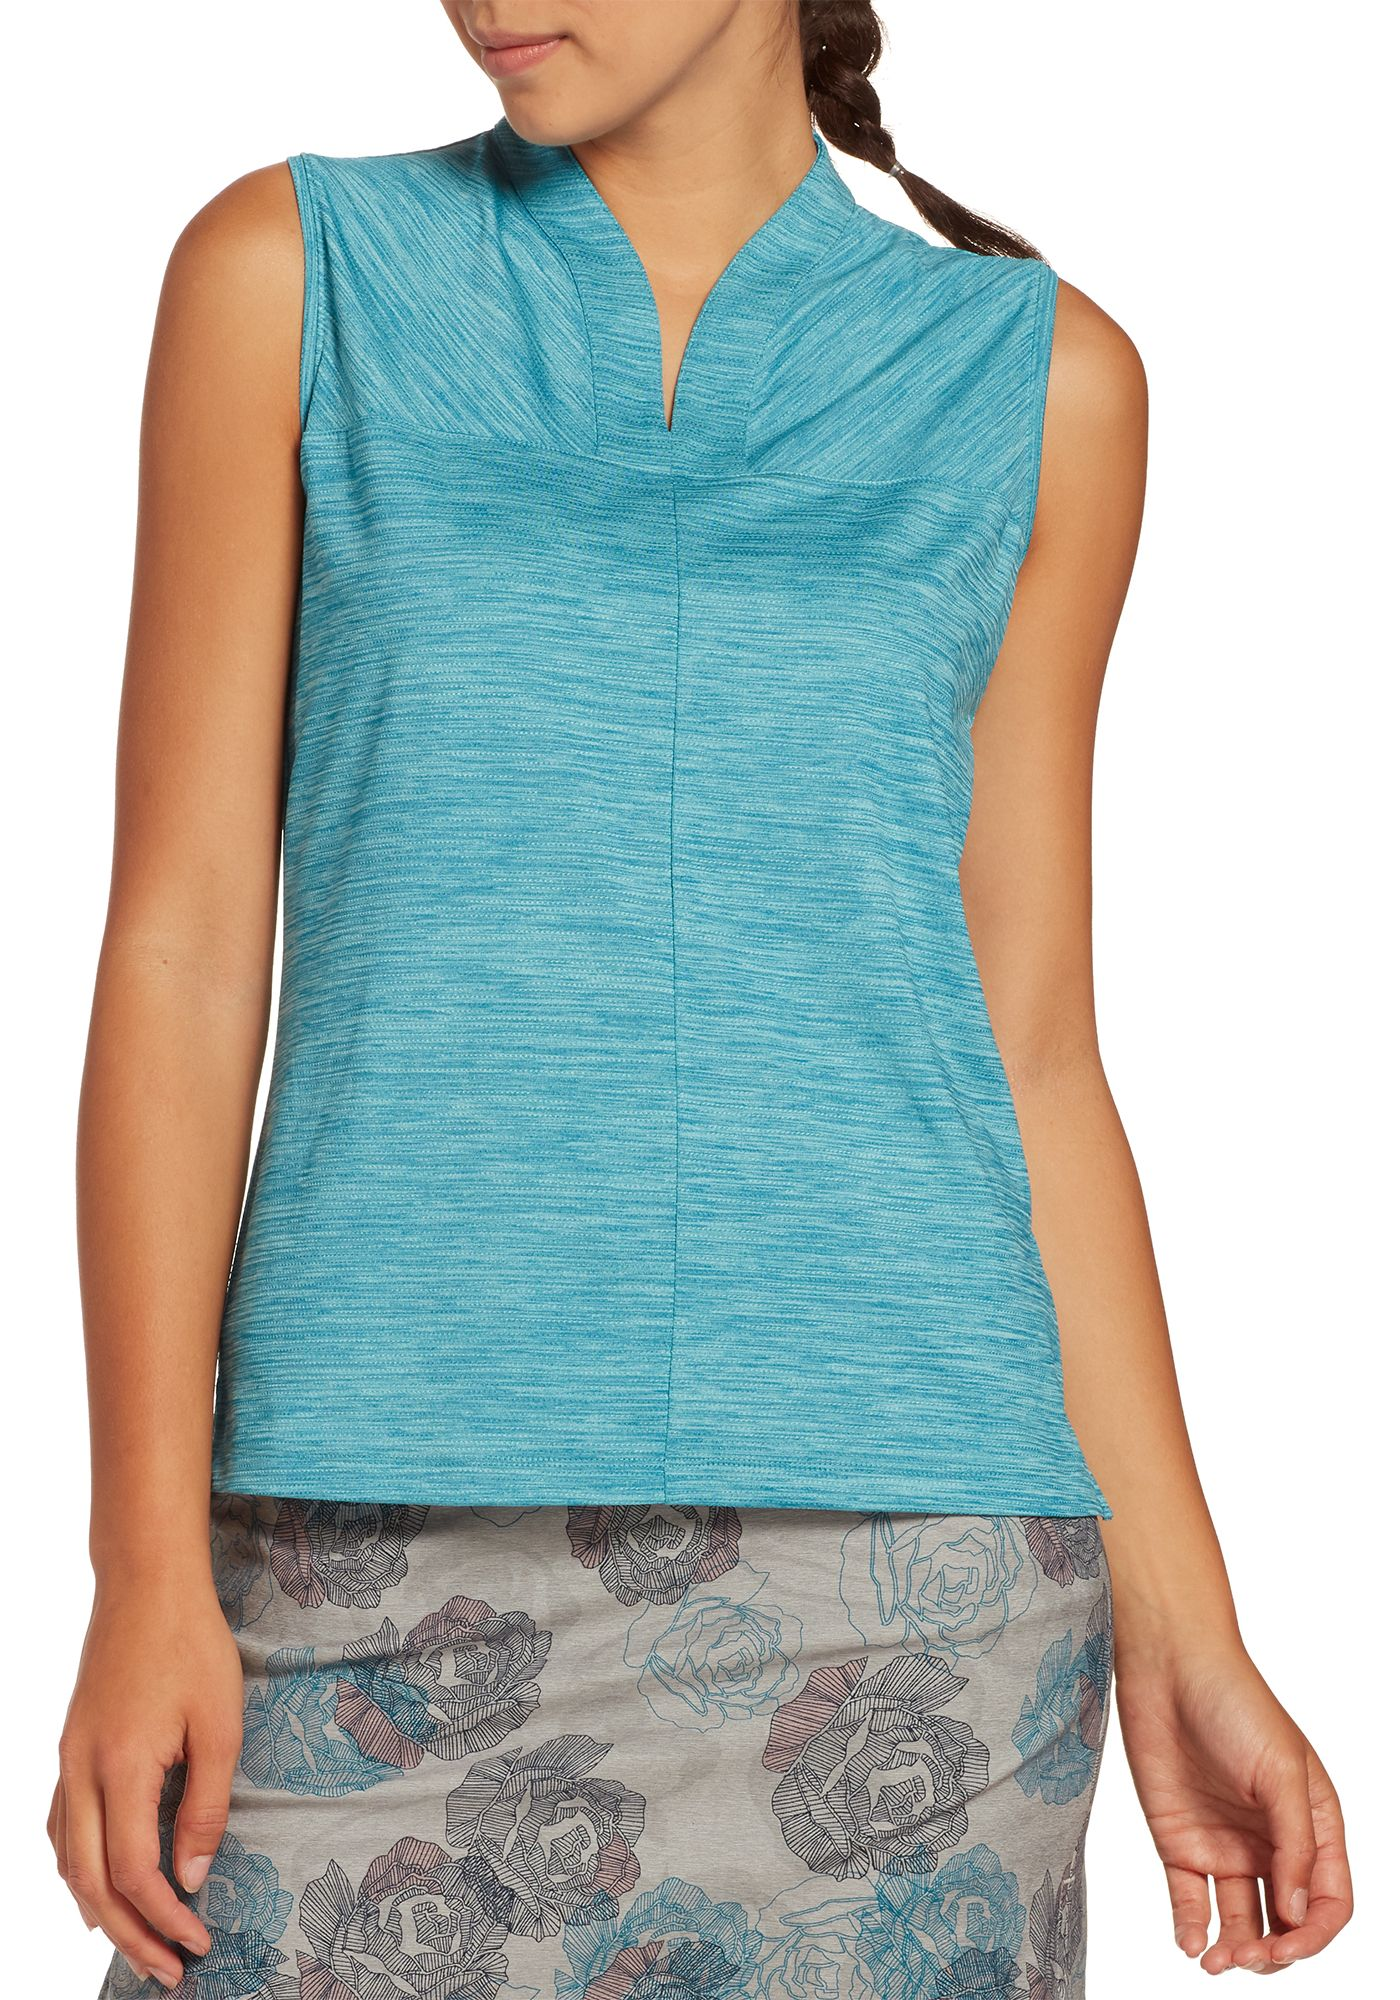 Lady Hagen Women's Tranquil Collection Mock Neck Sleeveless Golf Polo